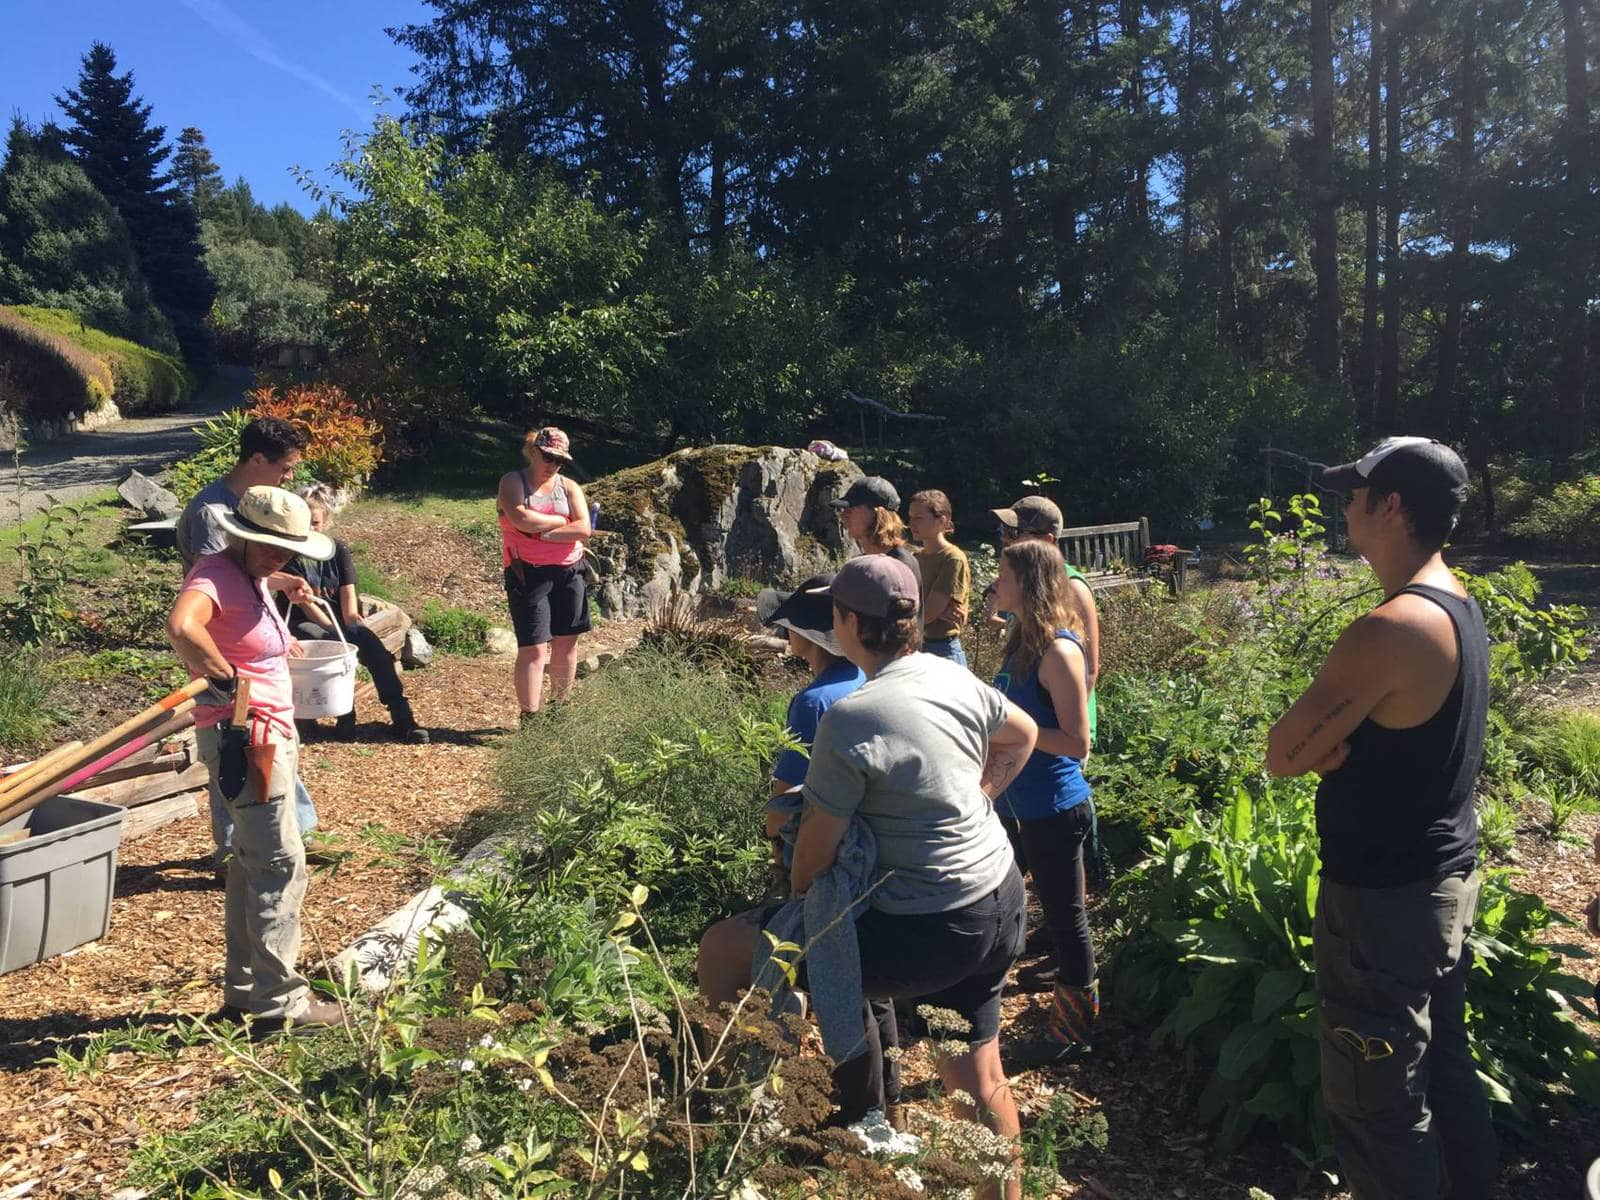 Students at the Pacific Horticulture College working in the Permaculture garden.